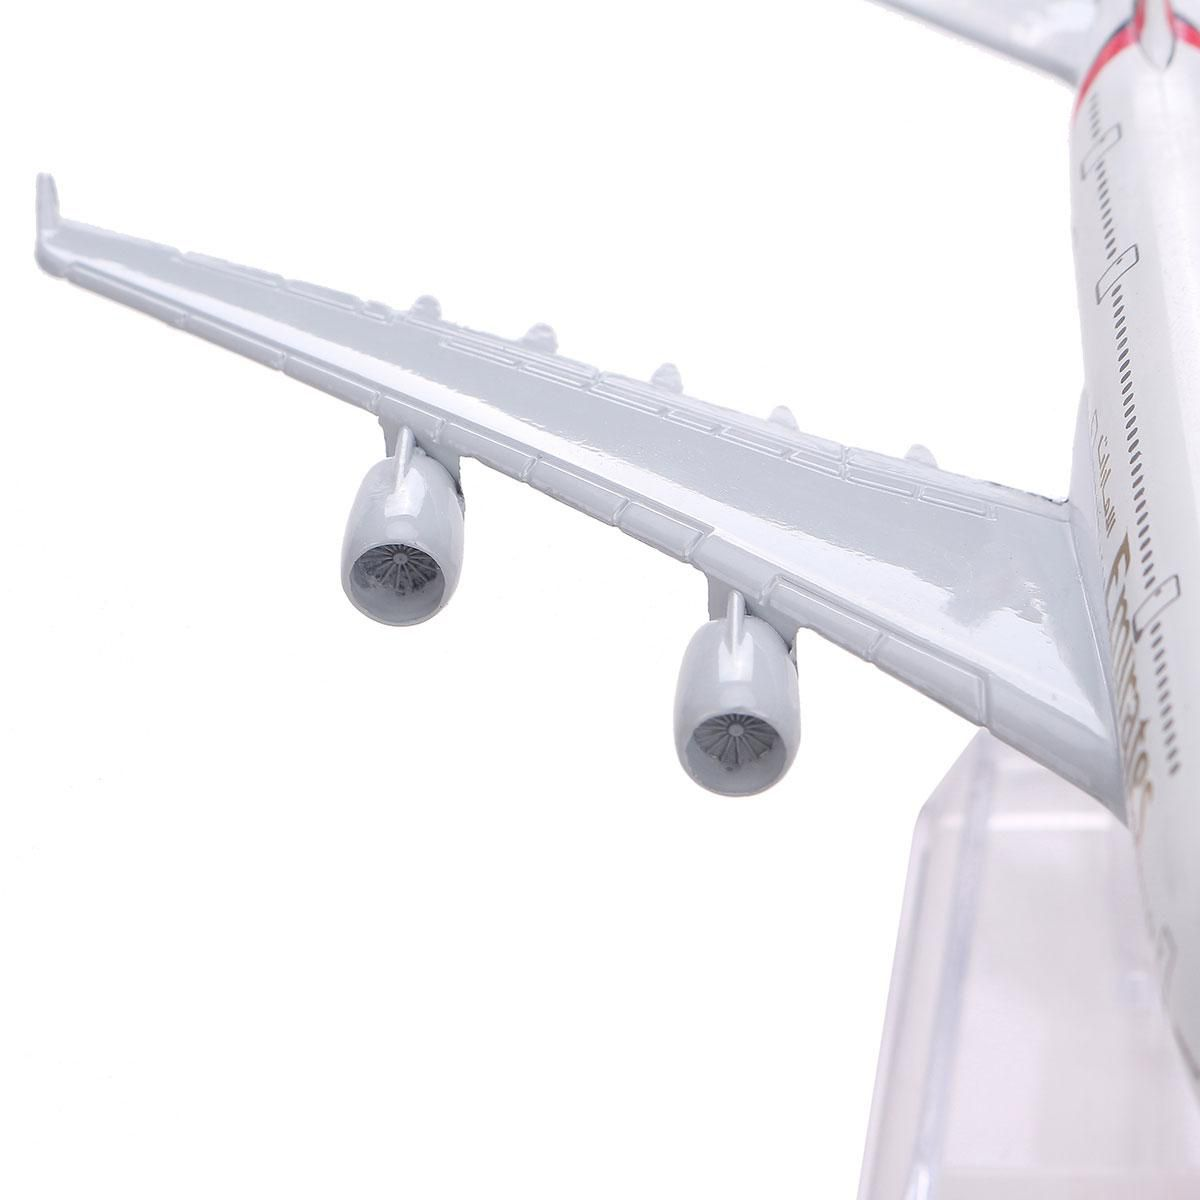 New 16cm Diecast Model Airbus380 Emirates Airlines A-380 Aircraft Aeroplane